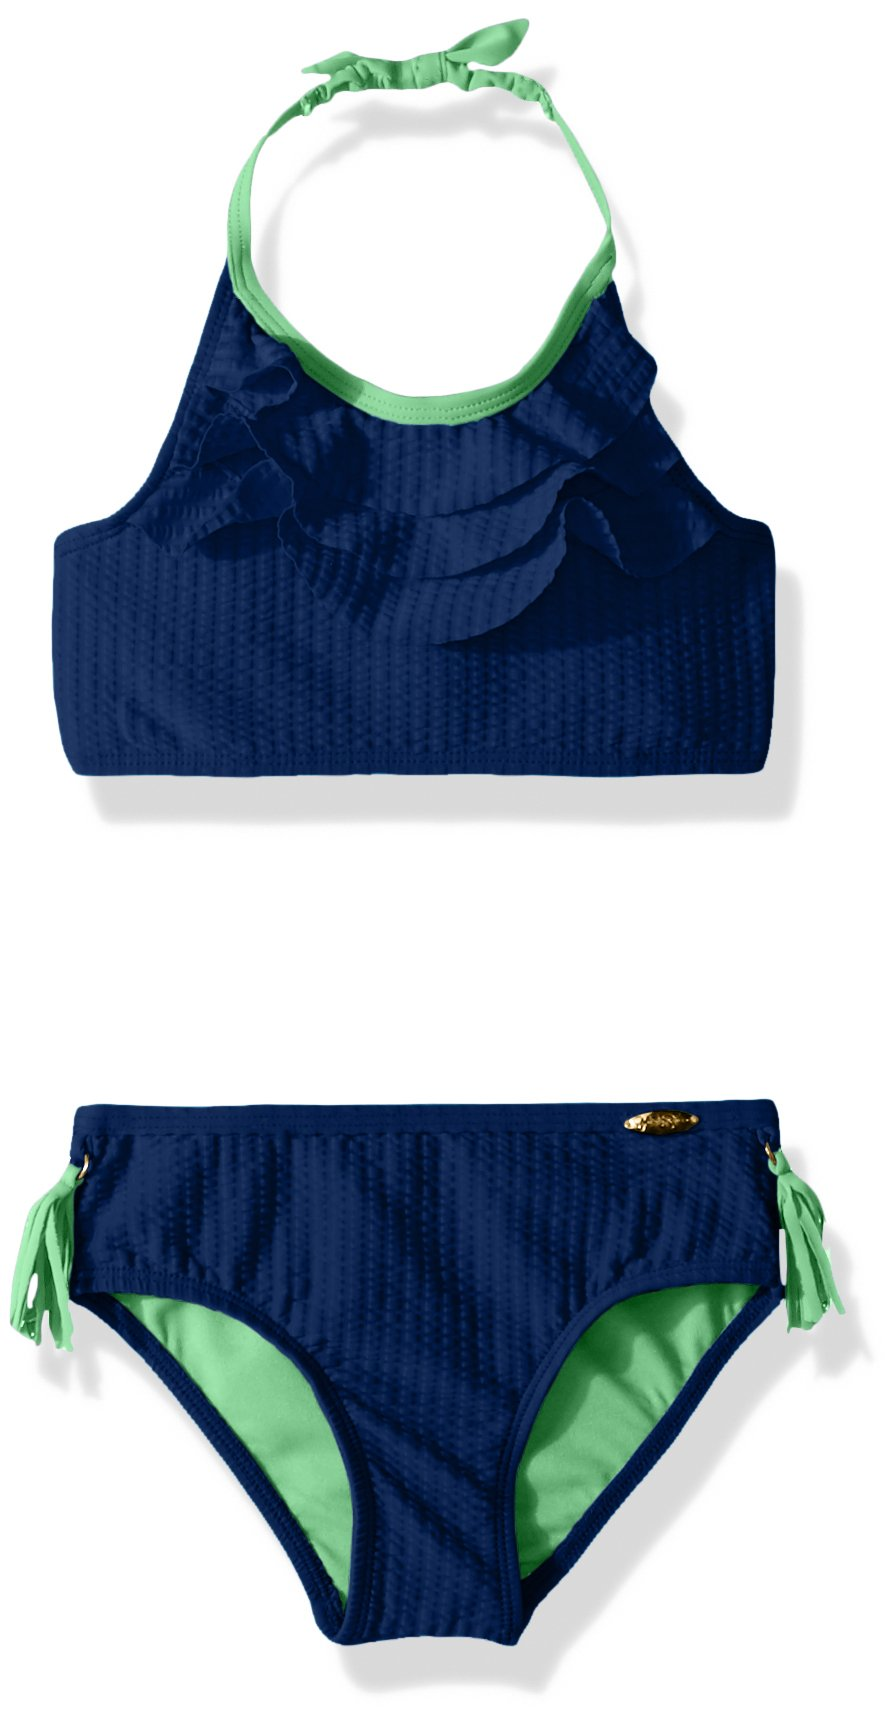 Jessica Simpson Little Girls' 2-Piece Bikini Swimsuit Set, Ruffle Front Navy, 6 by Jessica Simpson (Image #1)